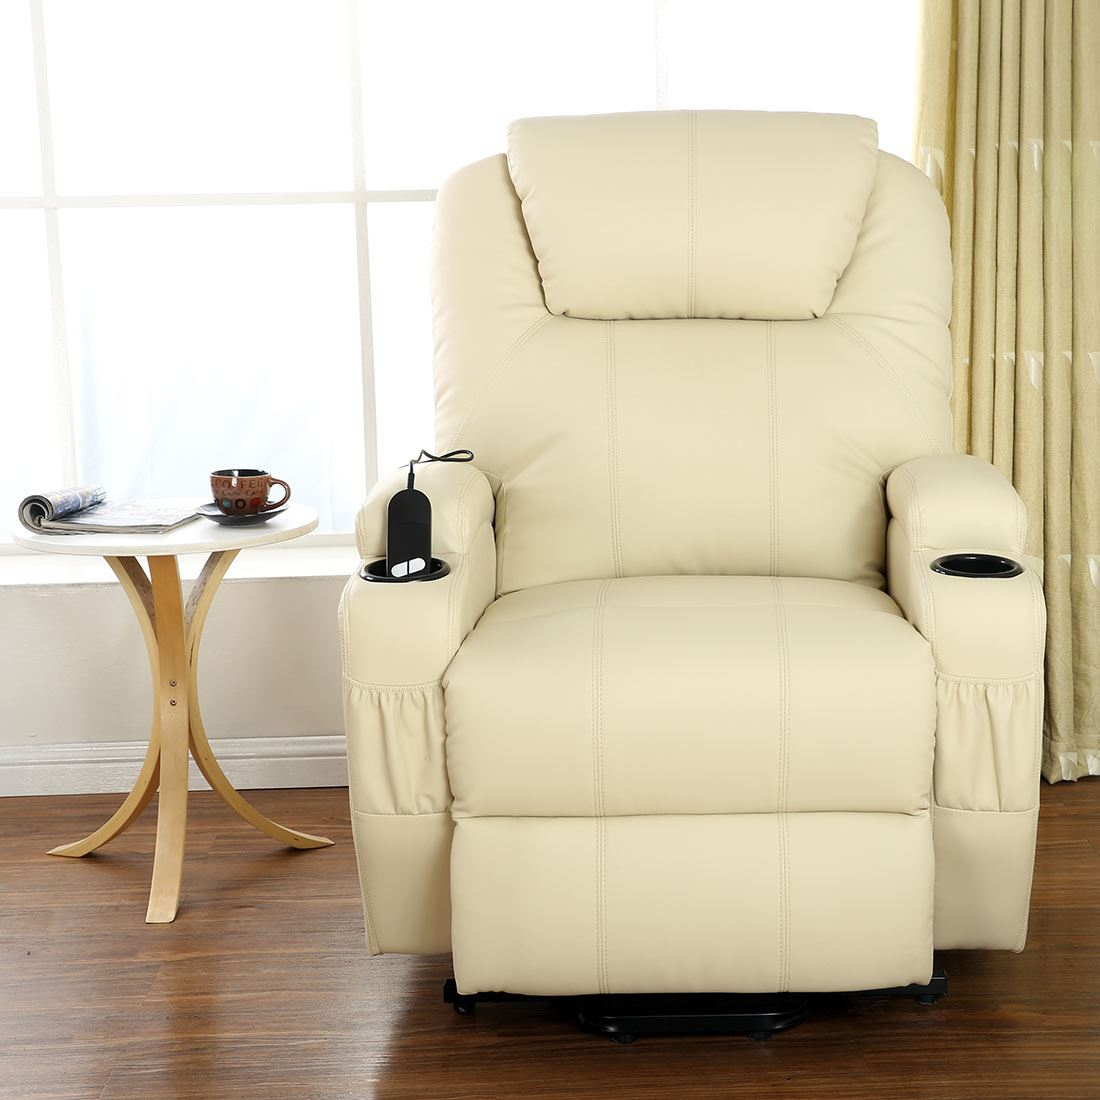 heated chair cover for recliner padmas plantation cinemo cream elecrtic rise leather massage